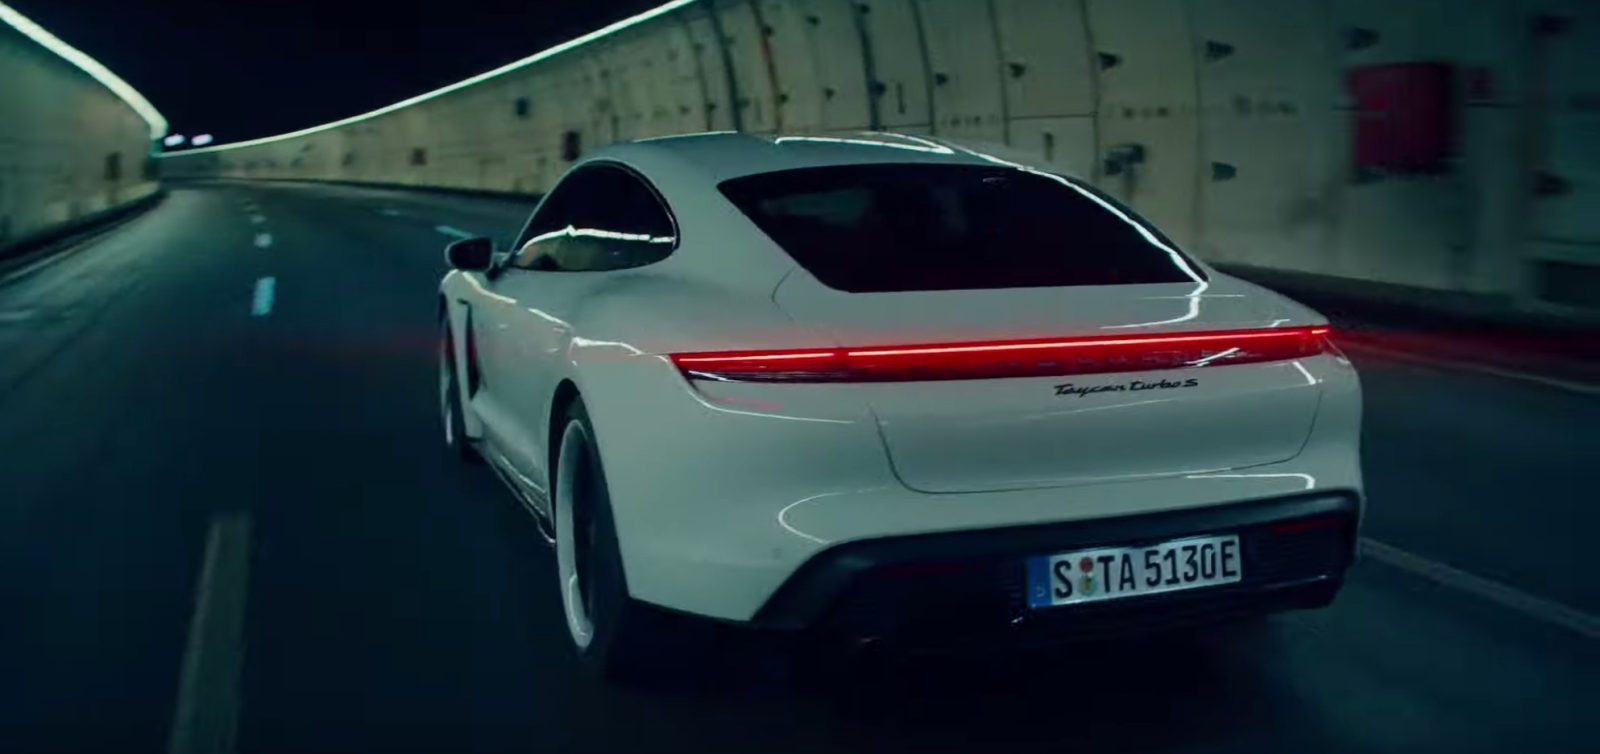 Porsche releases an ad for the Taycan: focuses on 'electrifying the soul'